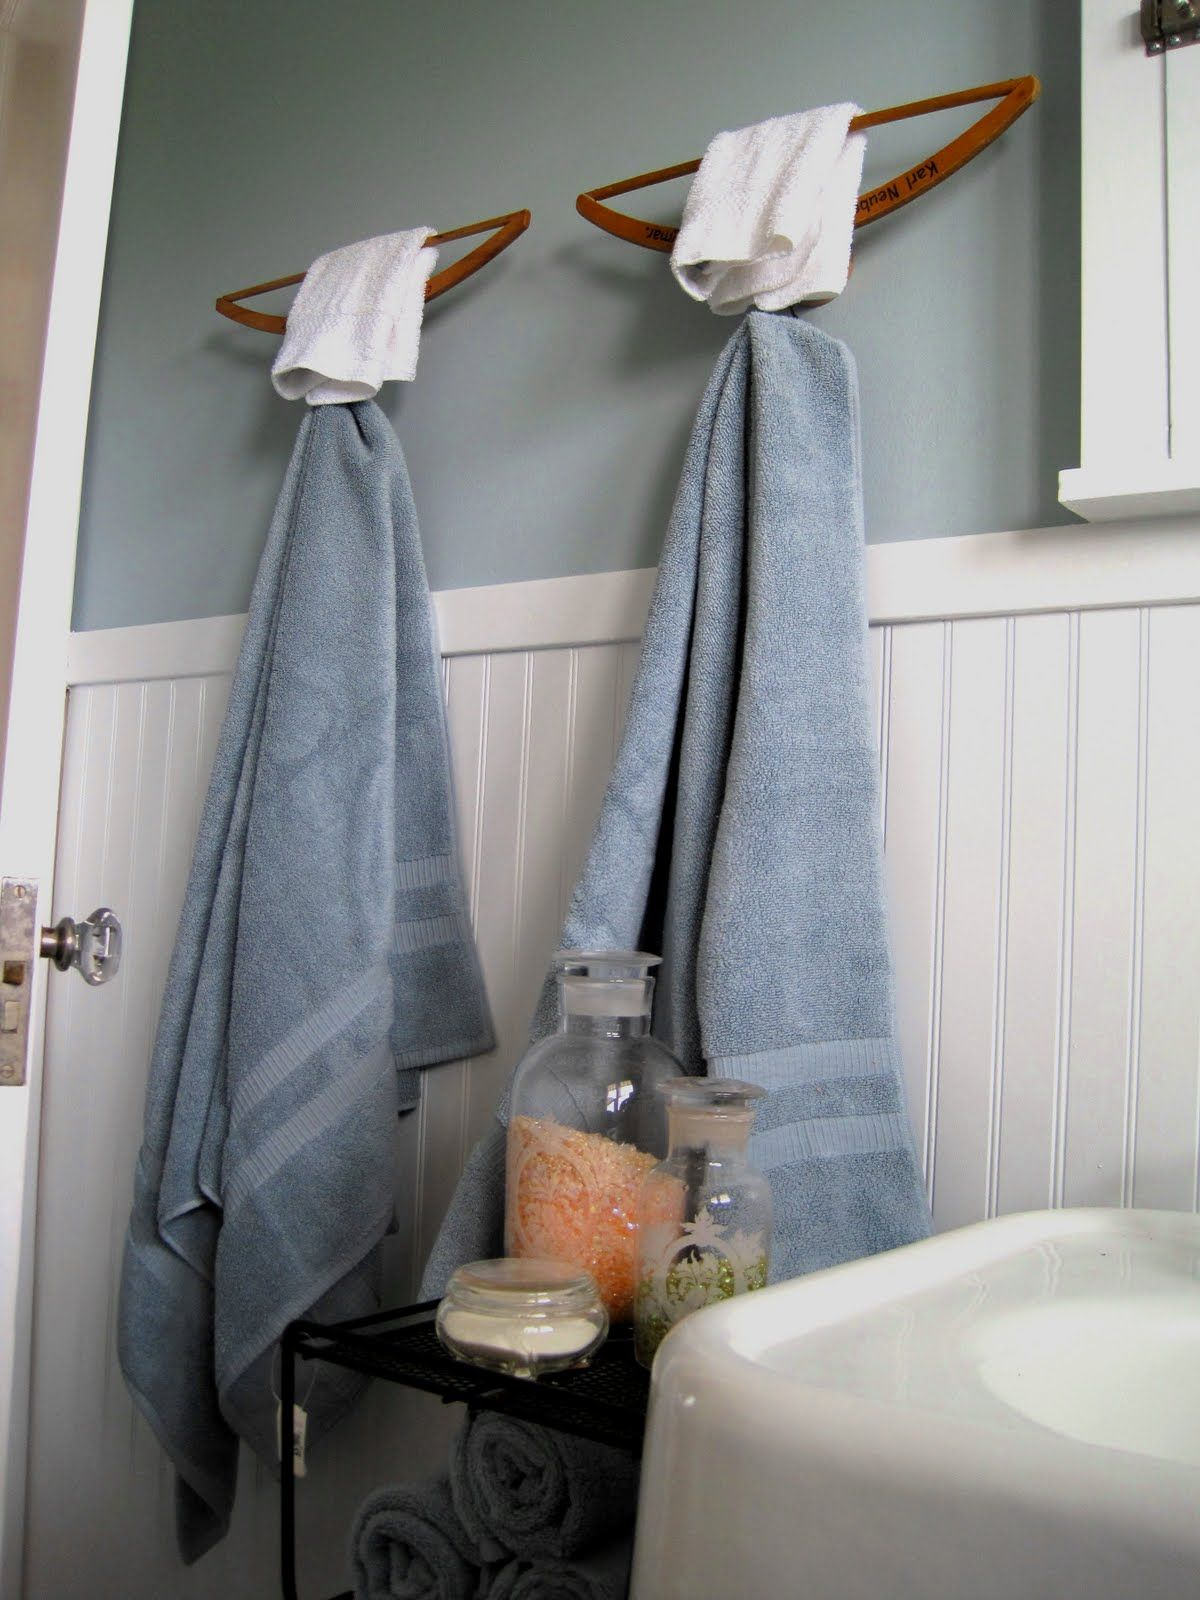 Towel Racks | Clothes hanger, Towels and Wooden hangers